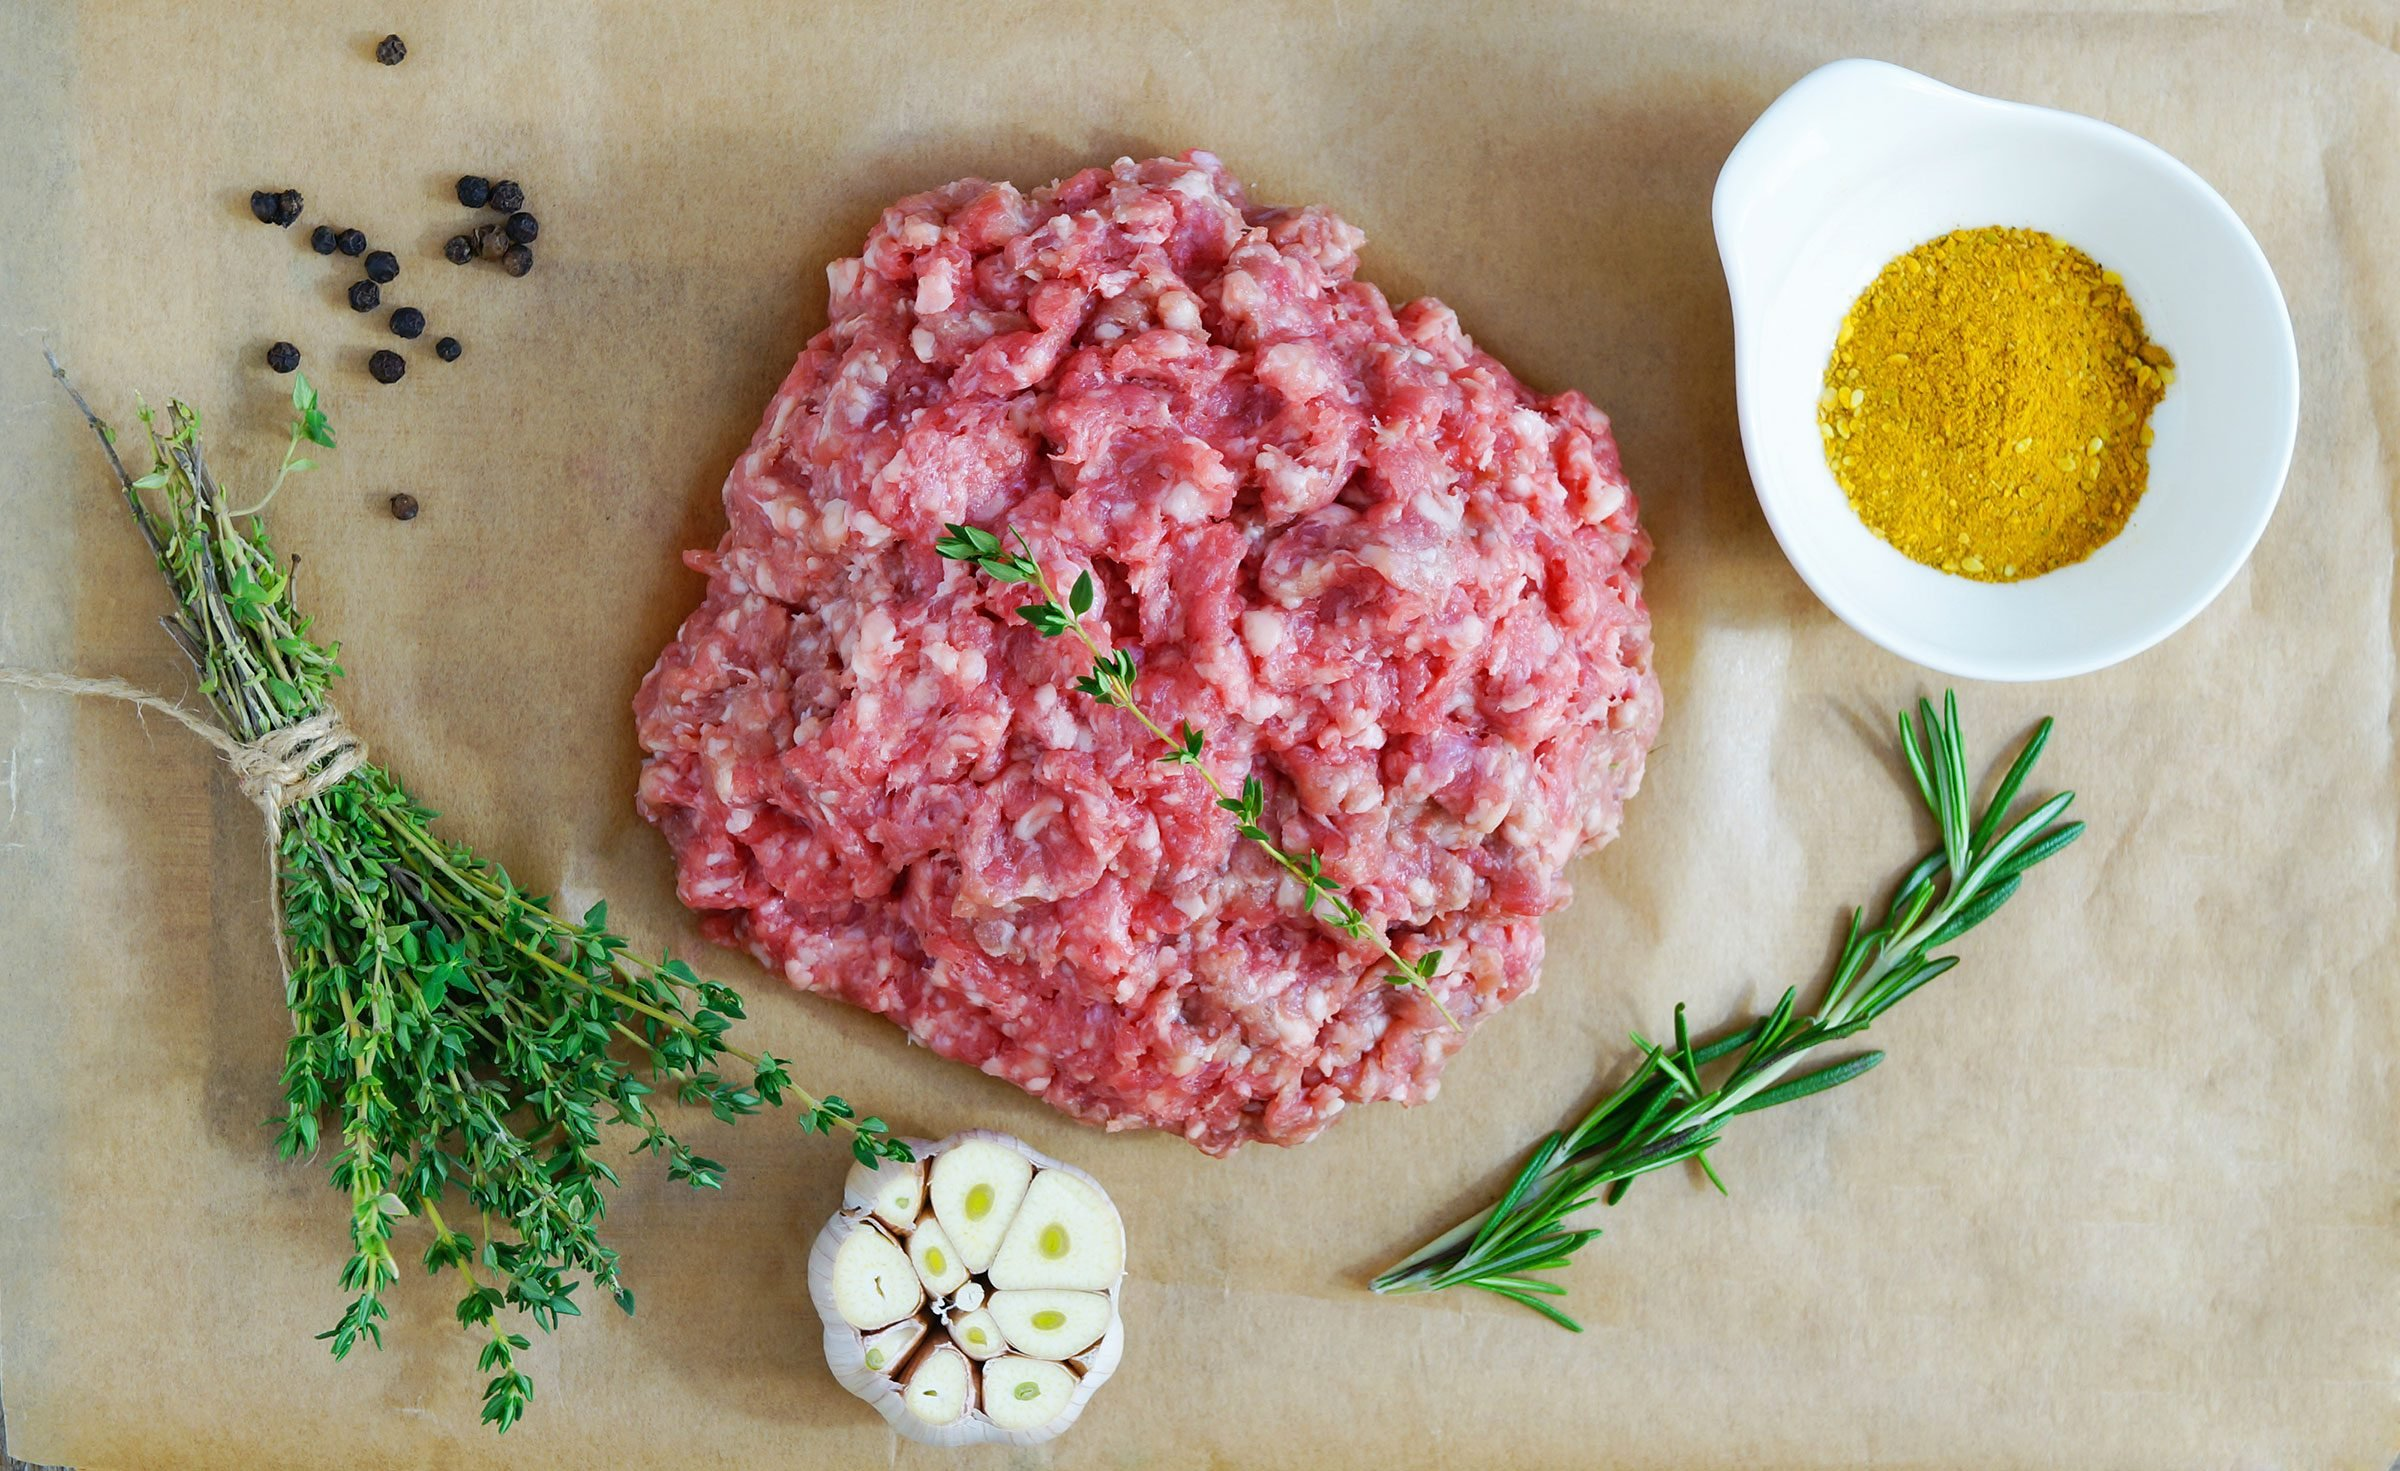 Go for ground sirloin, the leanest ground beef.